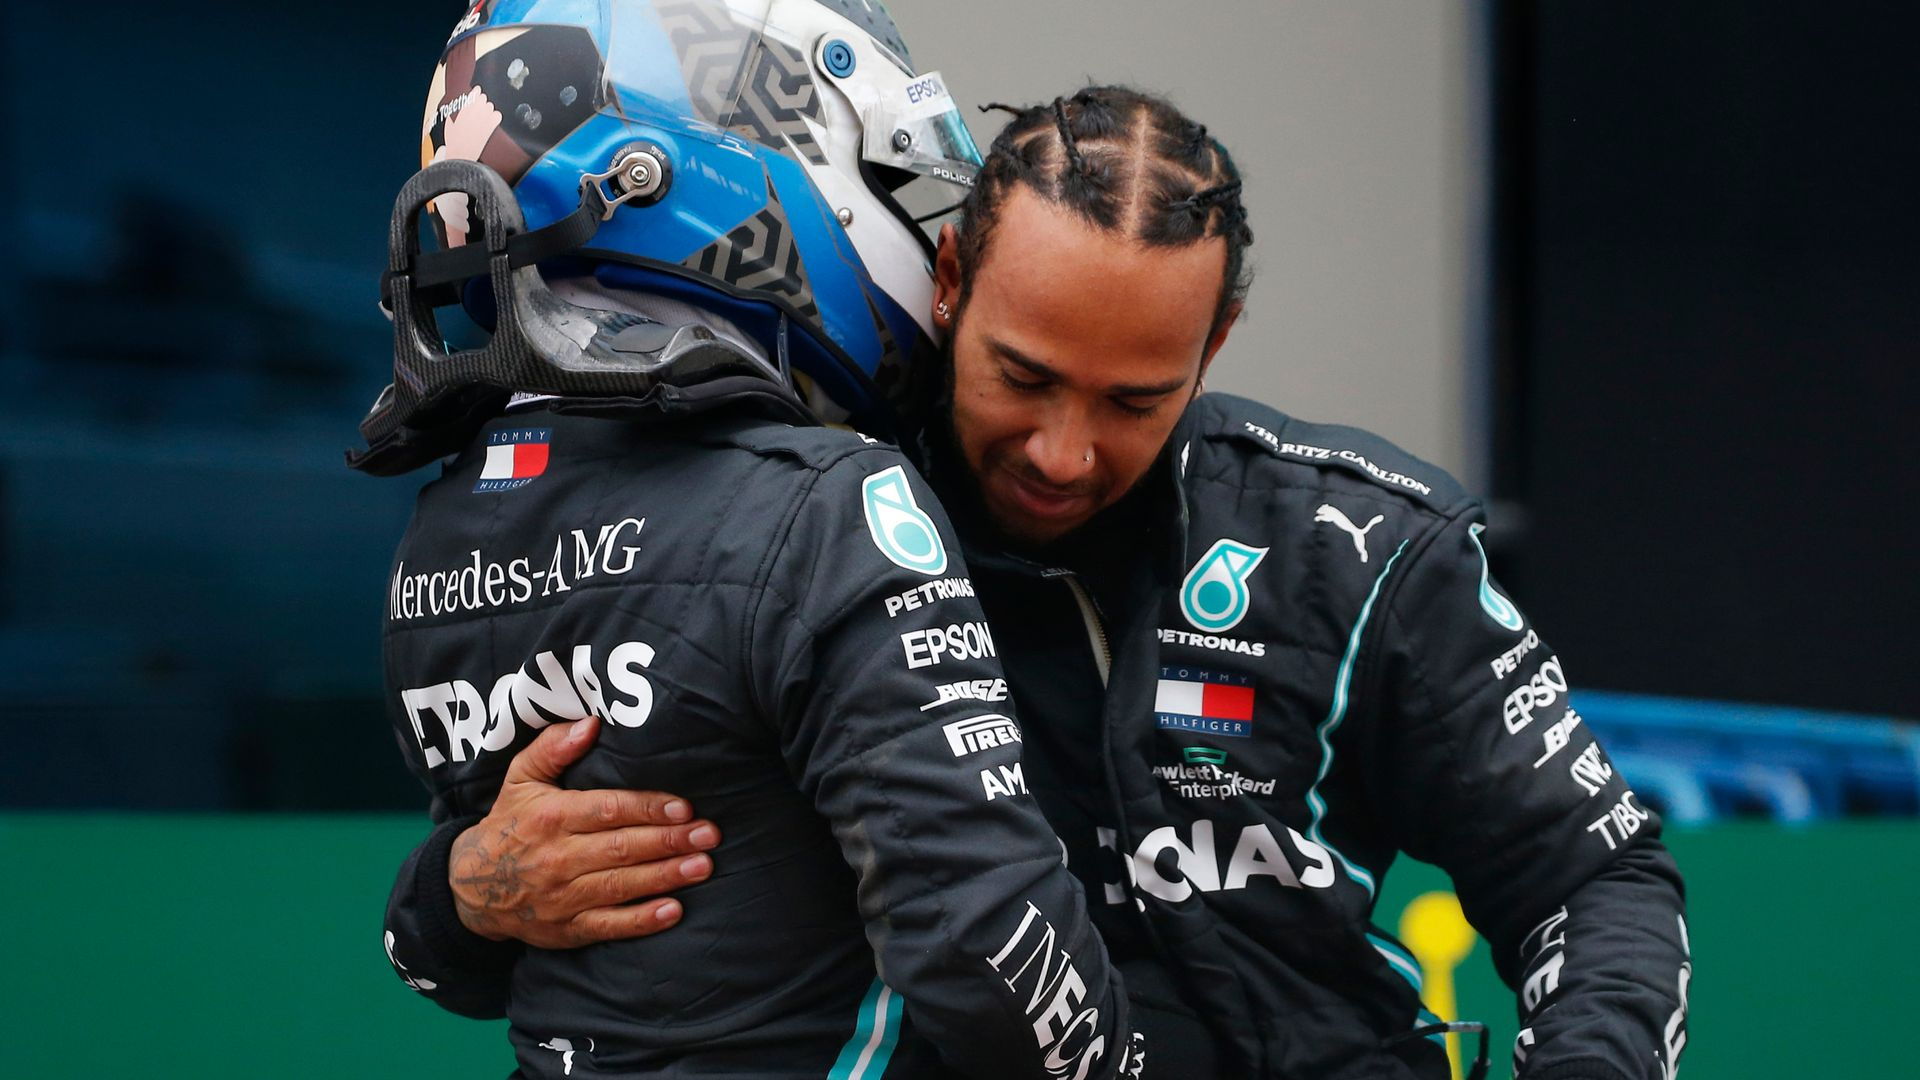 Six spins & lapped by Hamilton: What happened to Bottas?